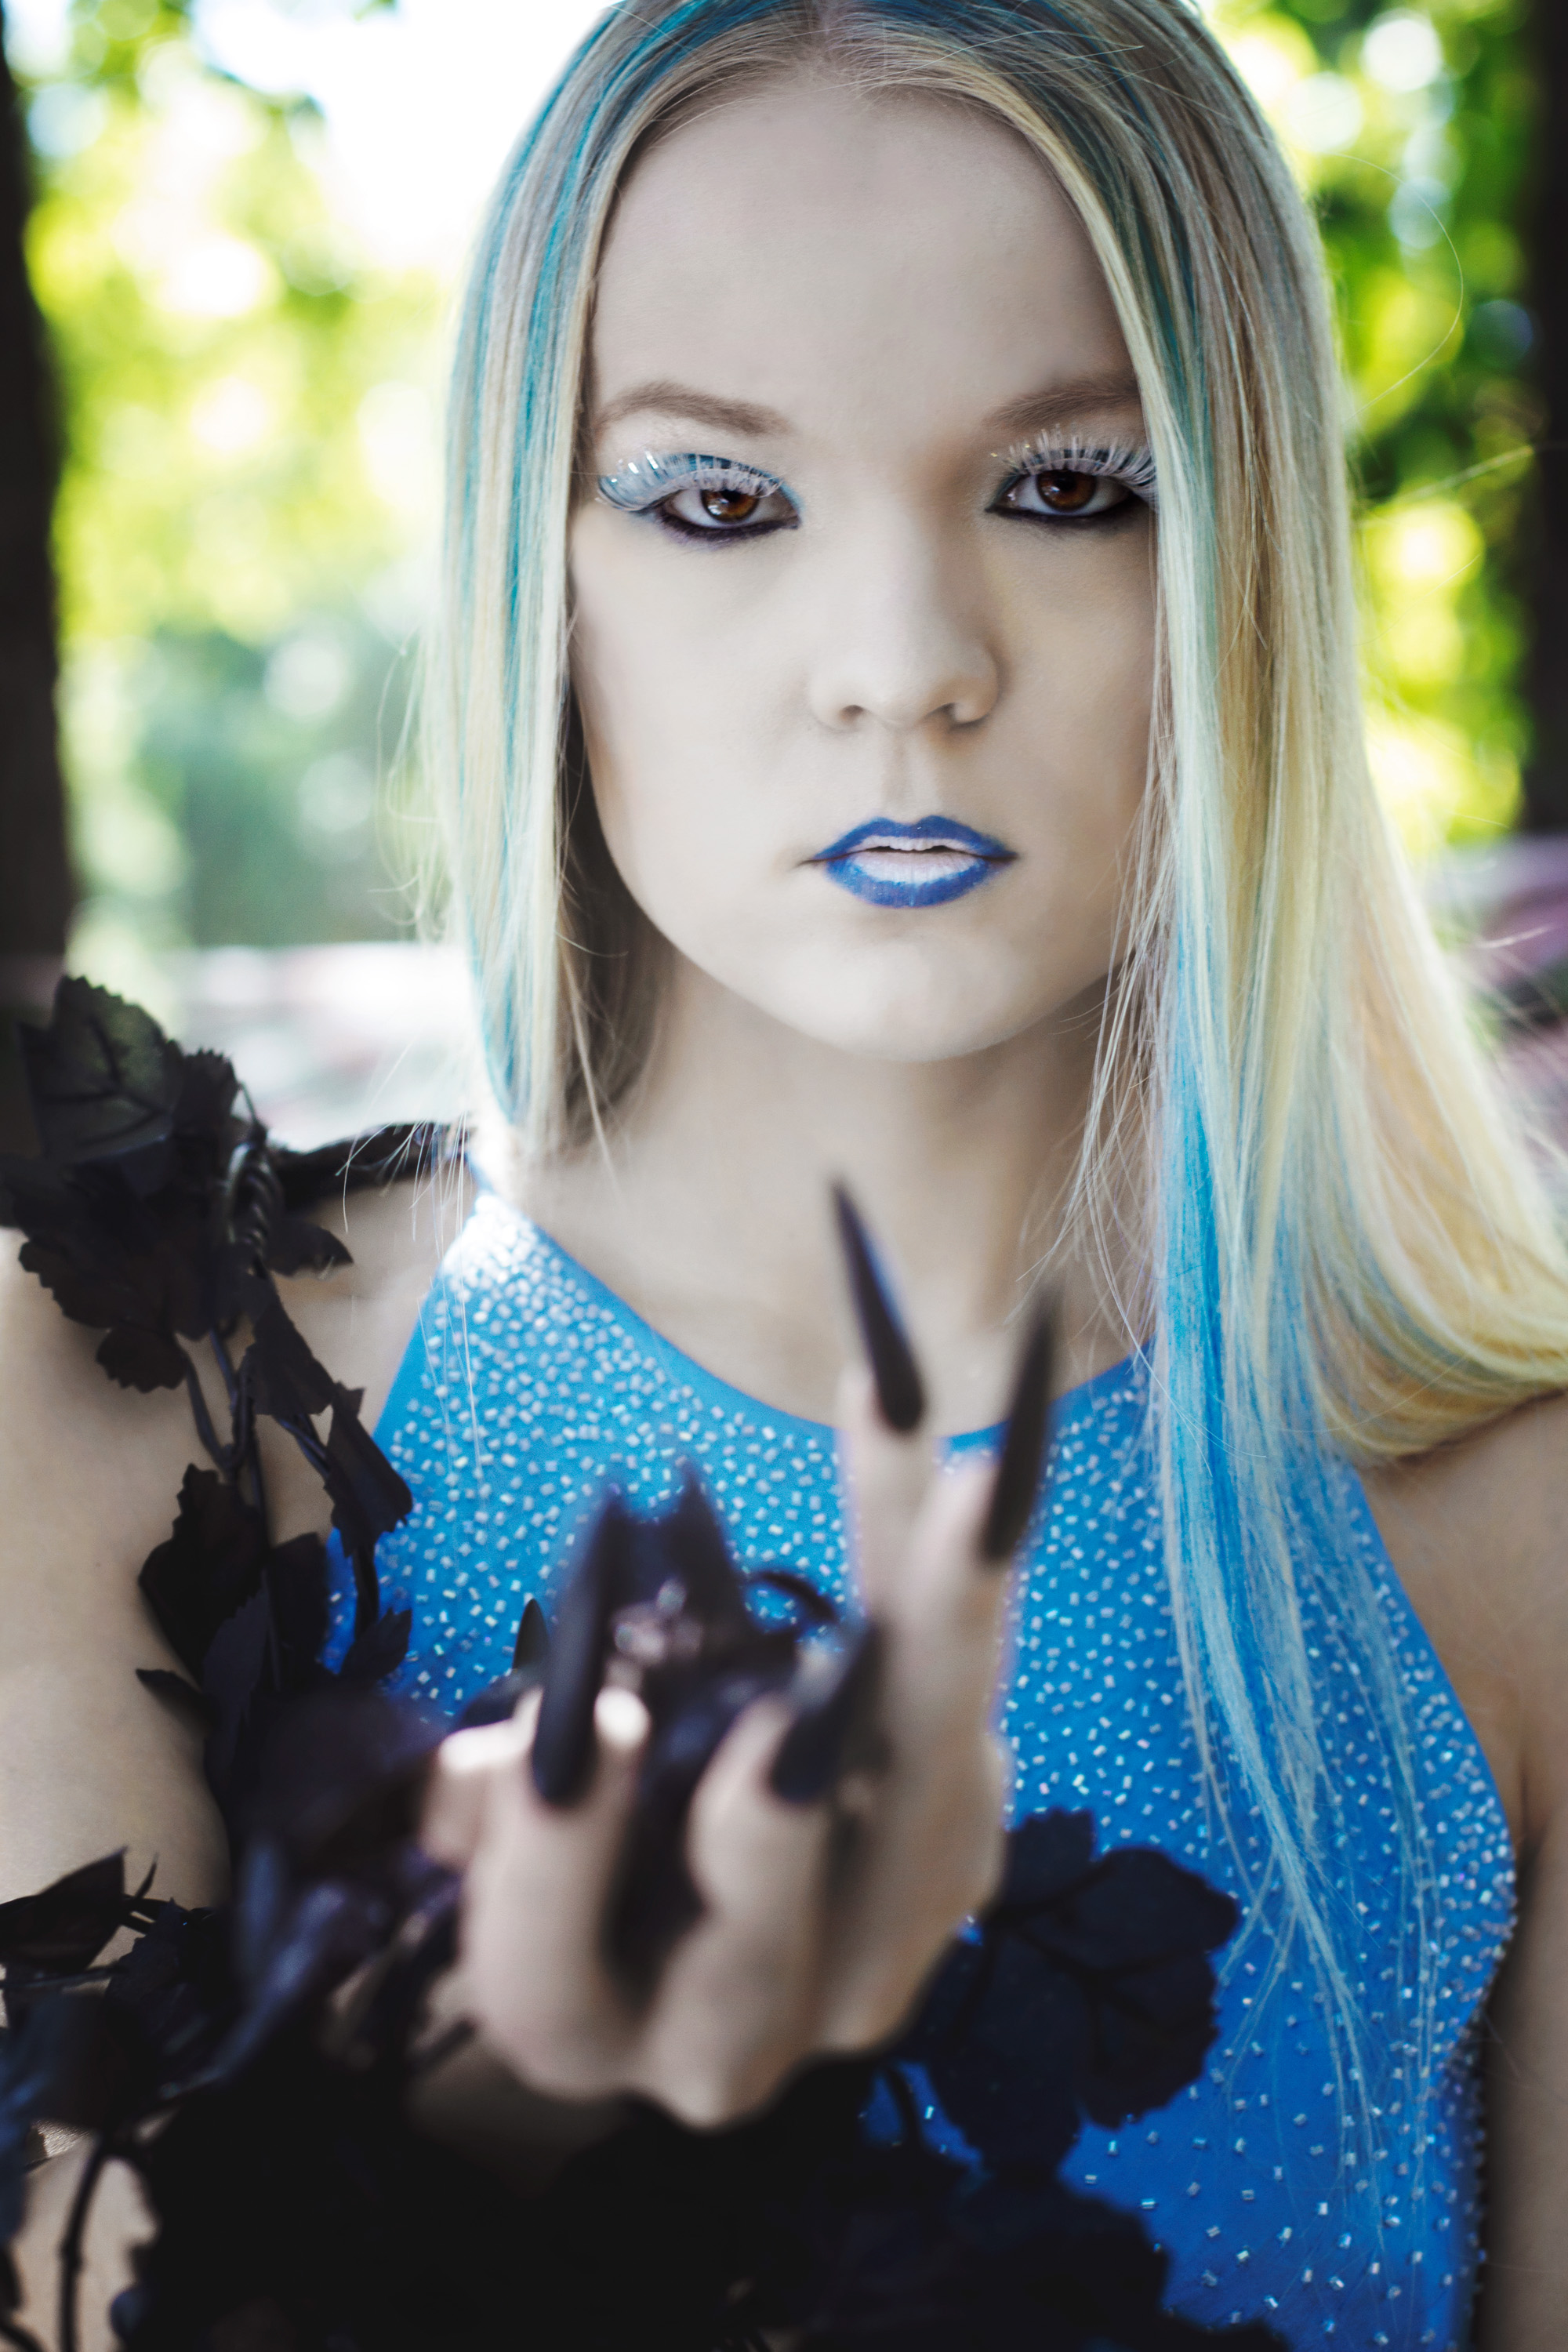 The Kaleidoscope Collective Candy Land shoot